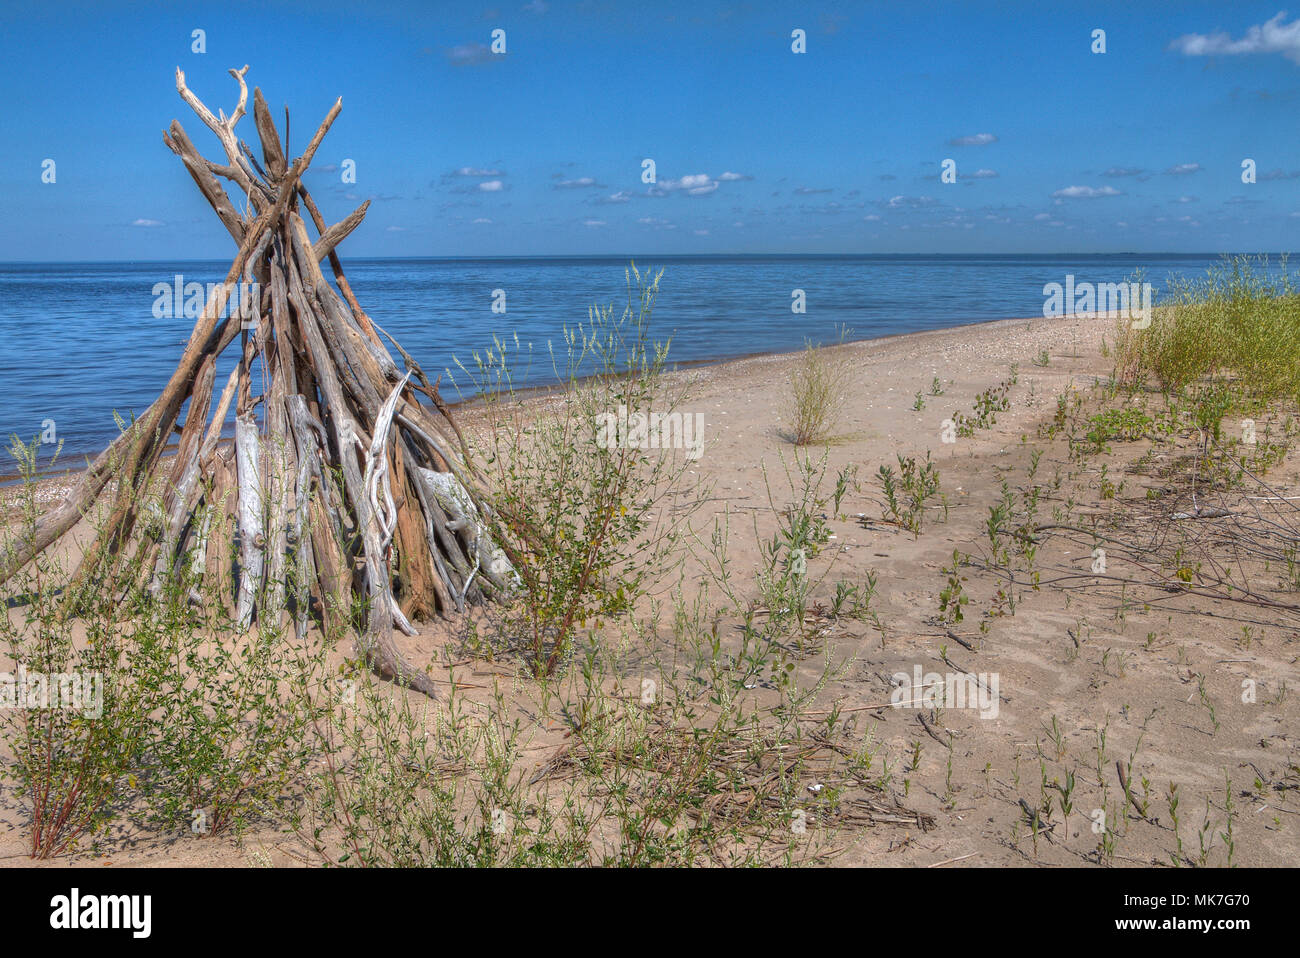 Zippel Bay is a state park in far north Minnesota on the